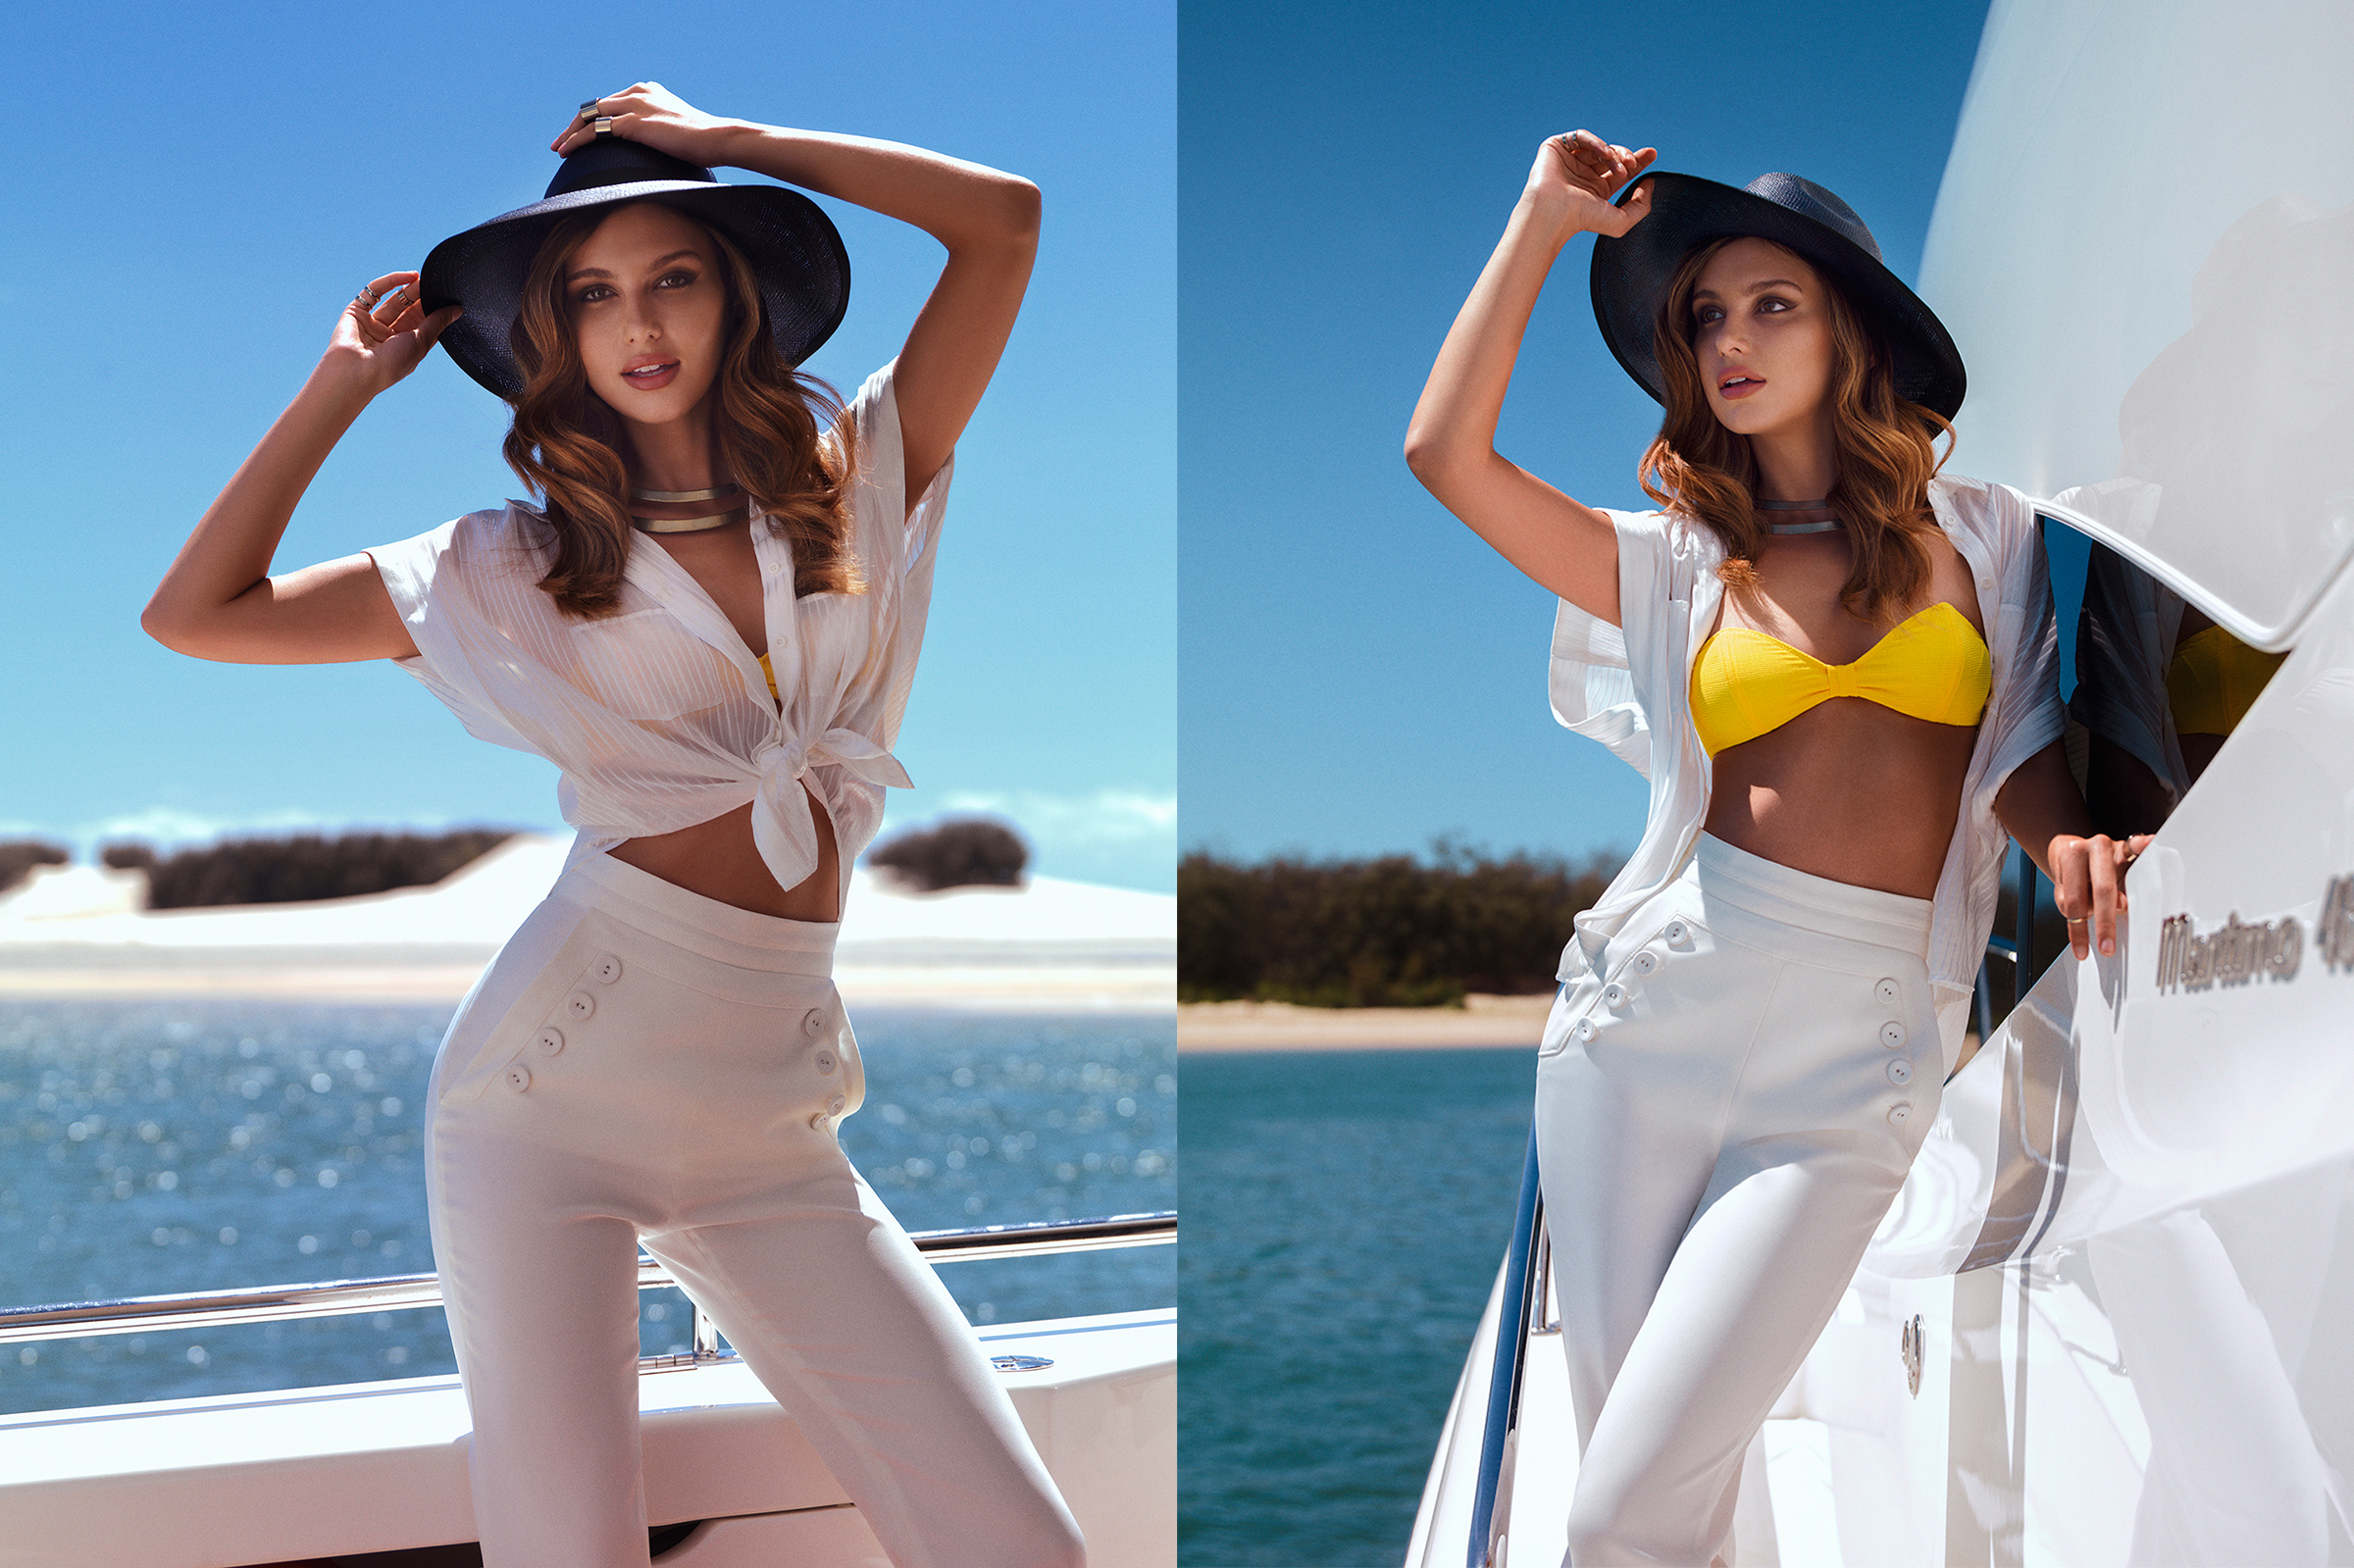 Melinda-Kemp-Maritimo-Brisbane-Gold-Coast-Fashion-Photographer-Mark-SullivanBradley.jpg